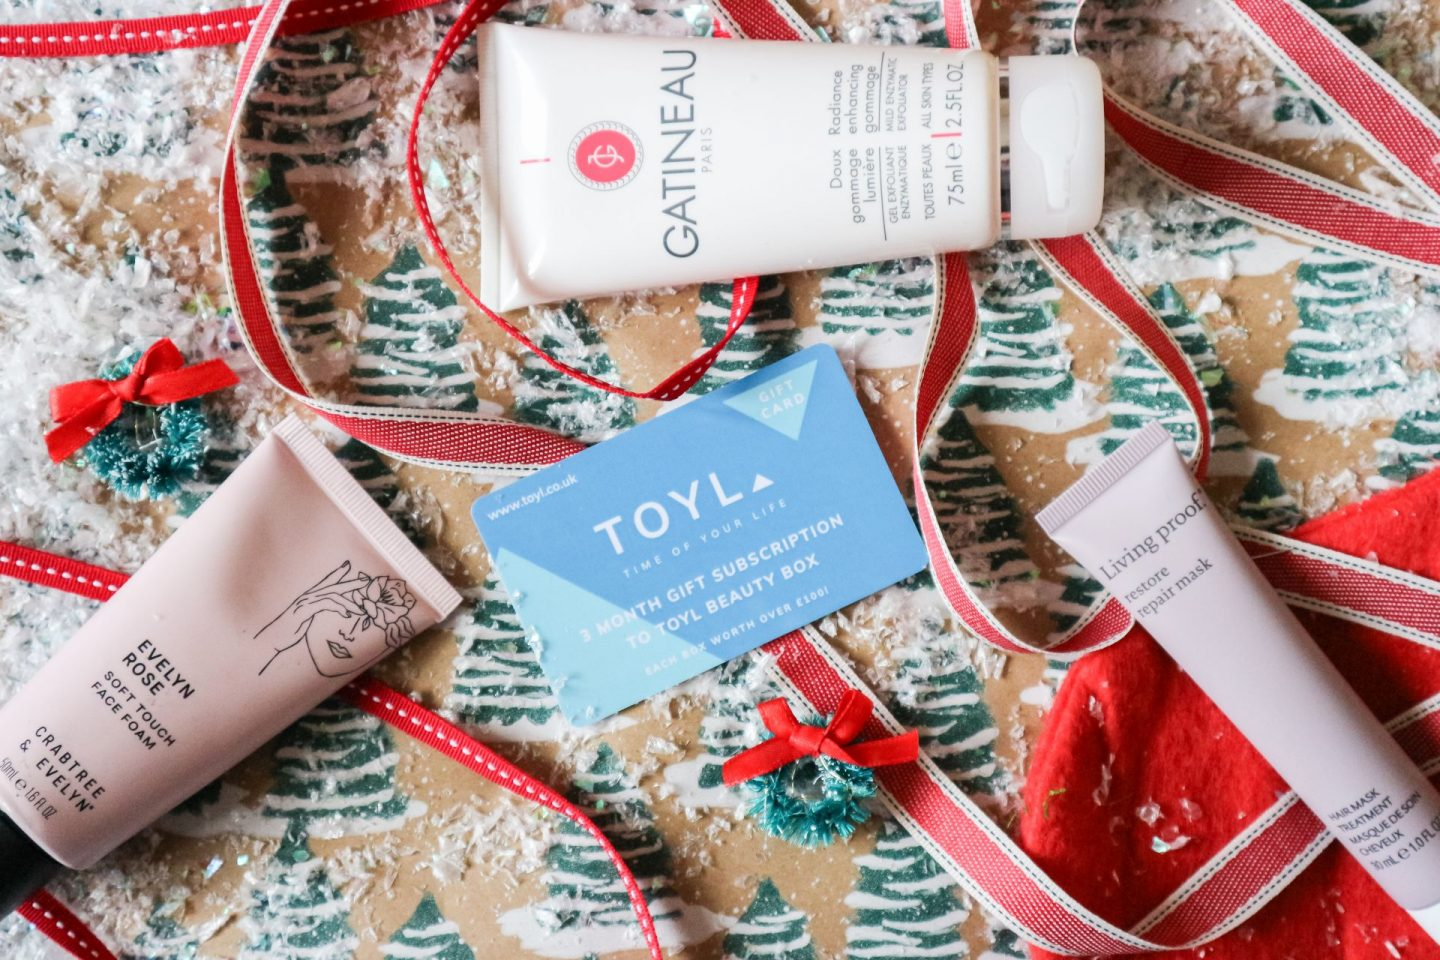 TOYL Beauty Box for Over 35s review